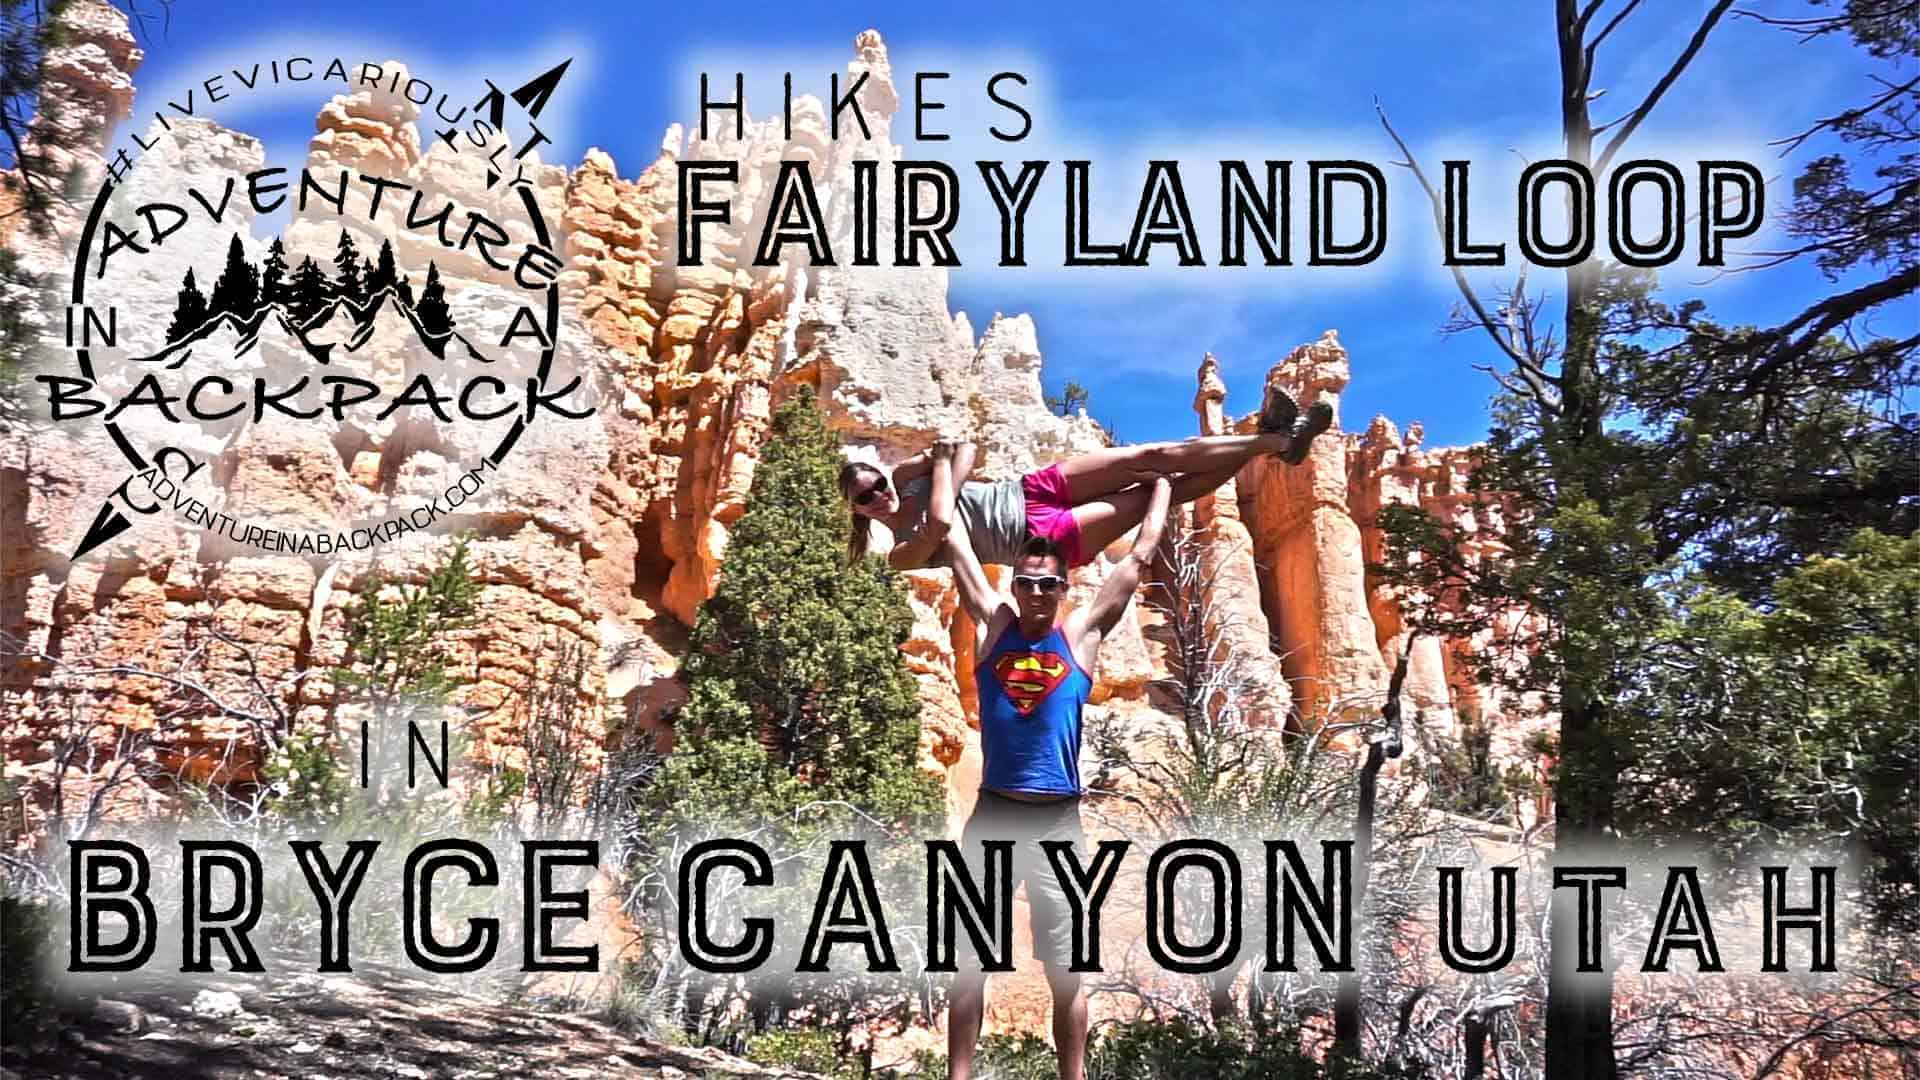 Fairyland Loop in Bryce Canyon National Park